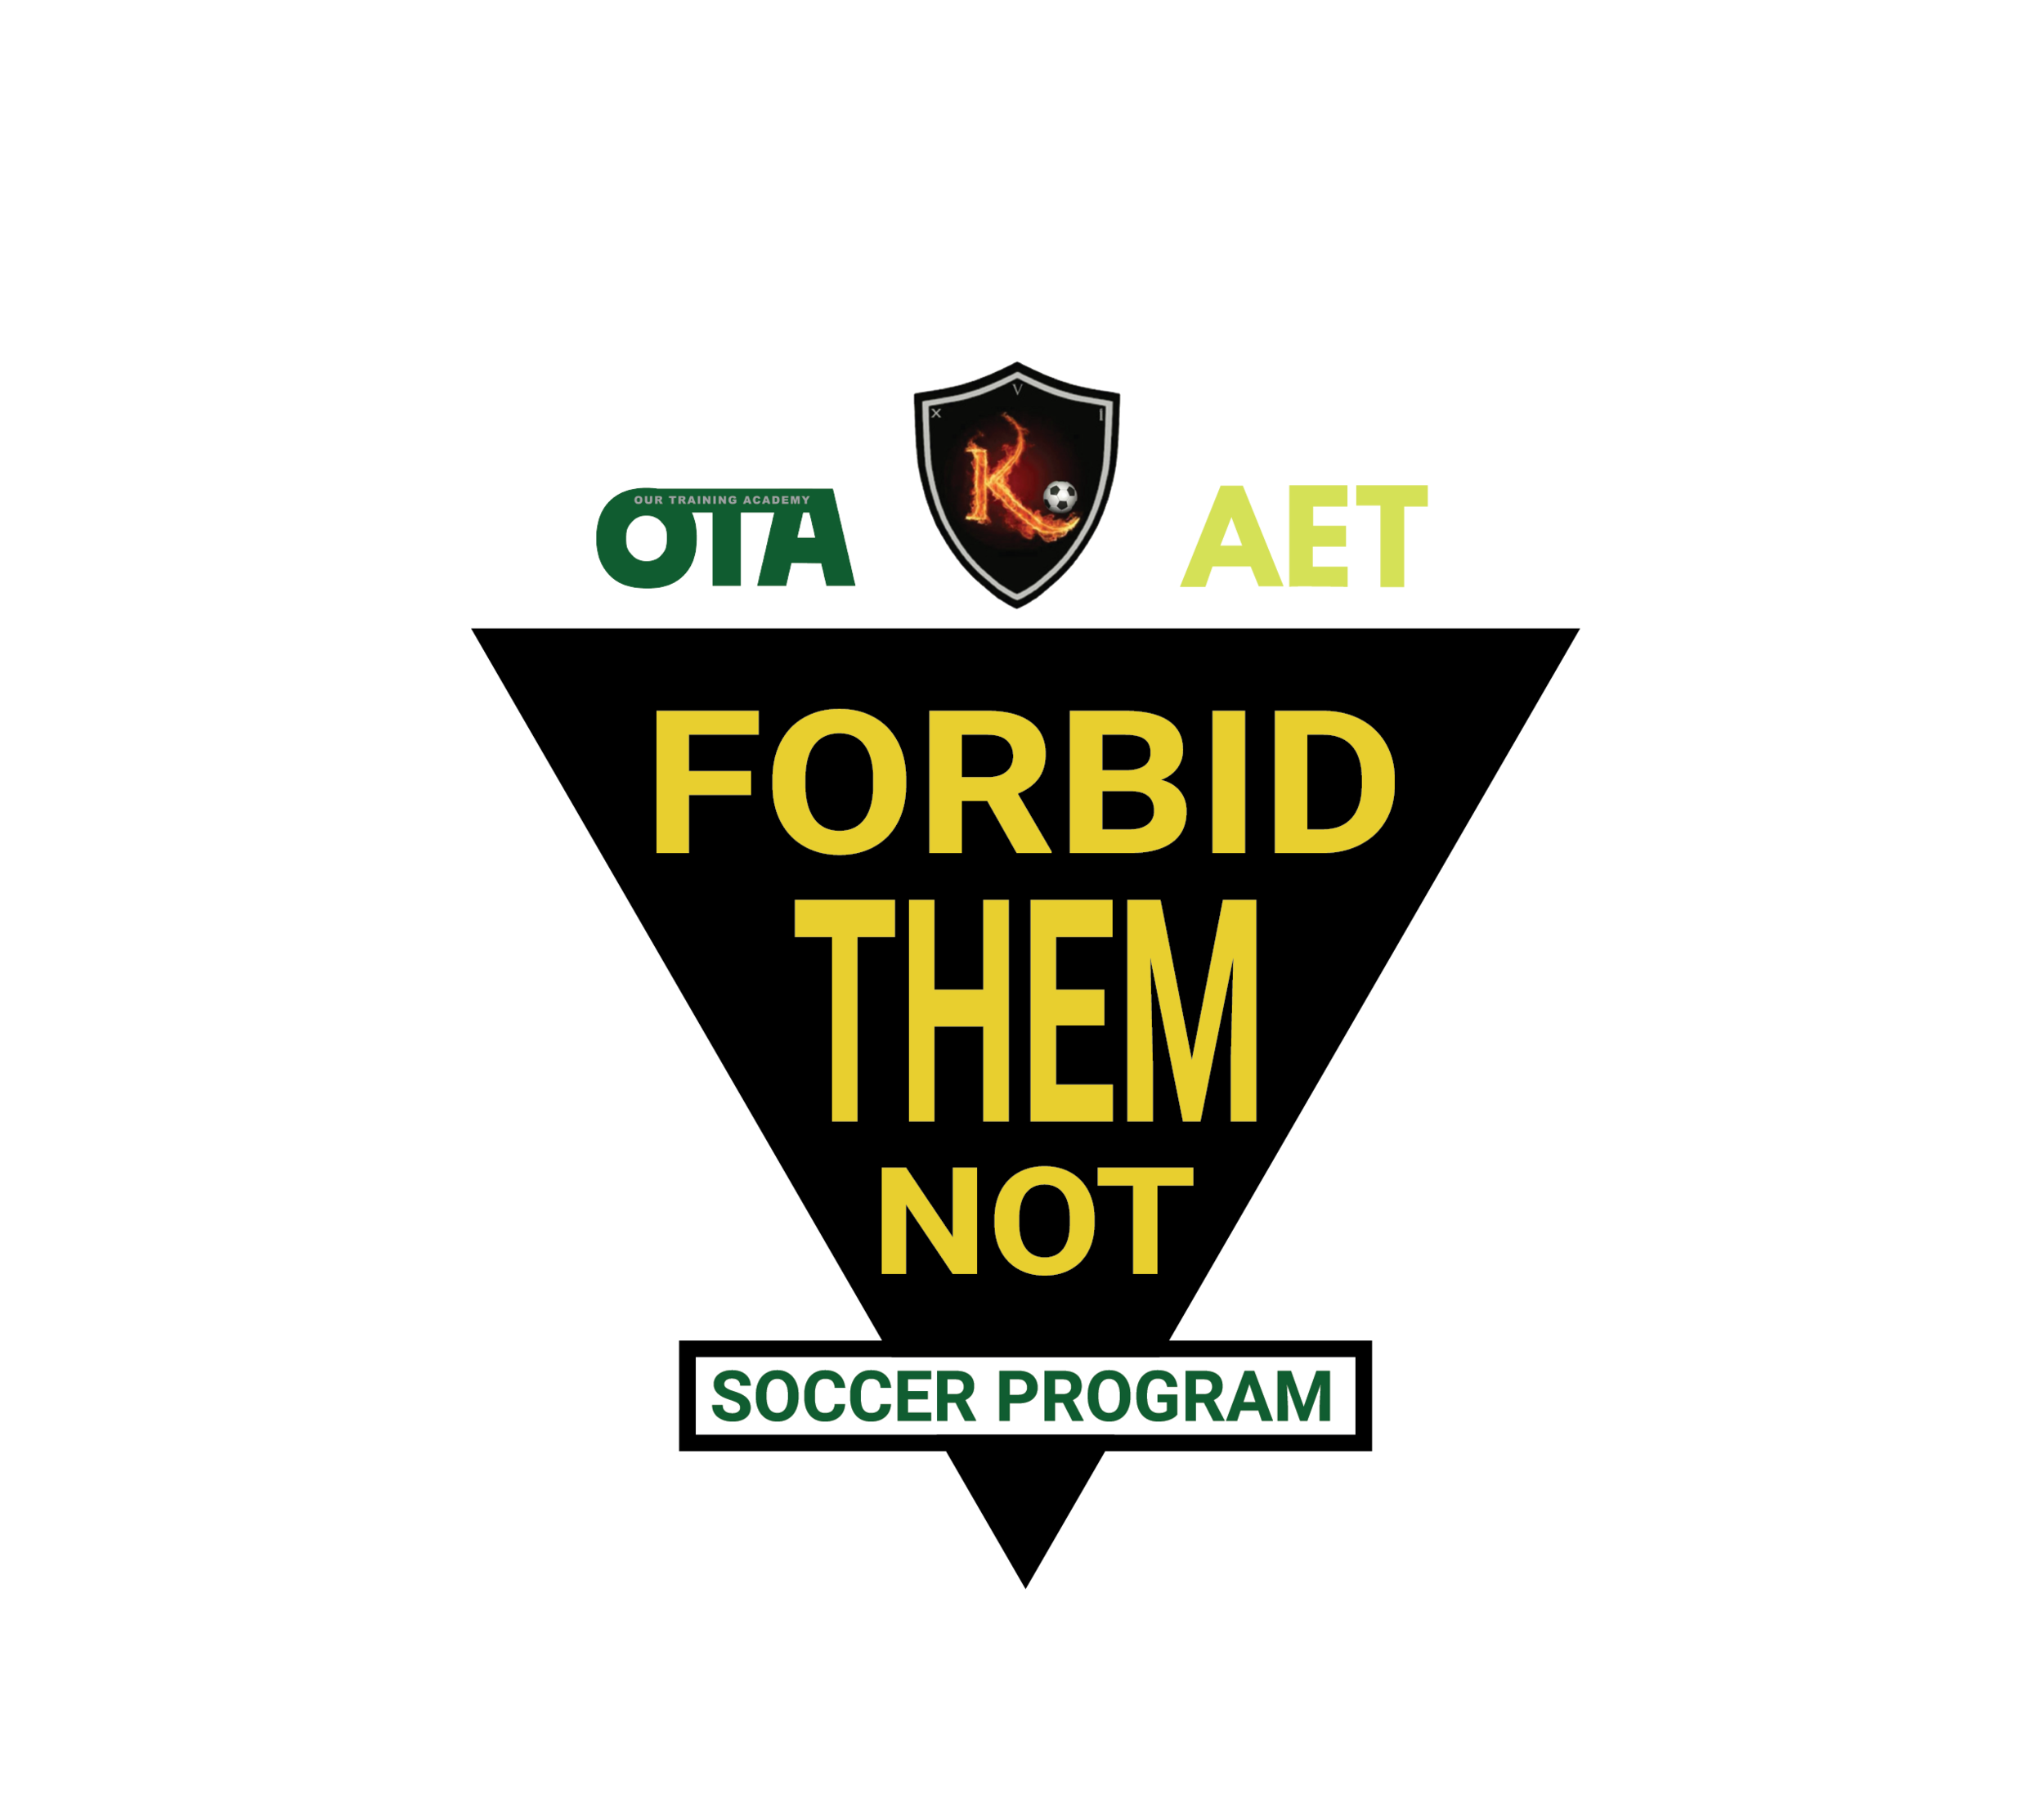 Forbid Them Not is a FREE TRAINING program for 2011 and 2012 soccer players. Our mission is to provide every athlete the opportunities to be part of this beautiful game. Our focus will to be to instruct the FUNdamentals skills and movements needed for soccer. This will all be done in a challenging environment that promotes creativity and players decision-making skills to help players reach their goals and potential! -